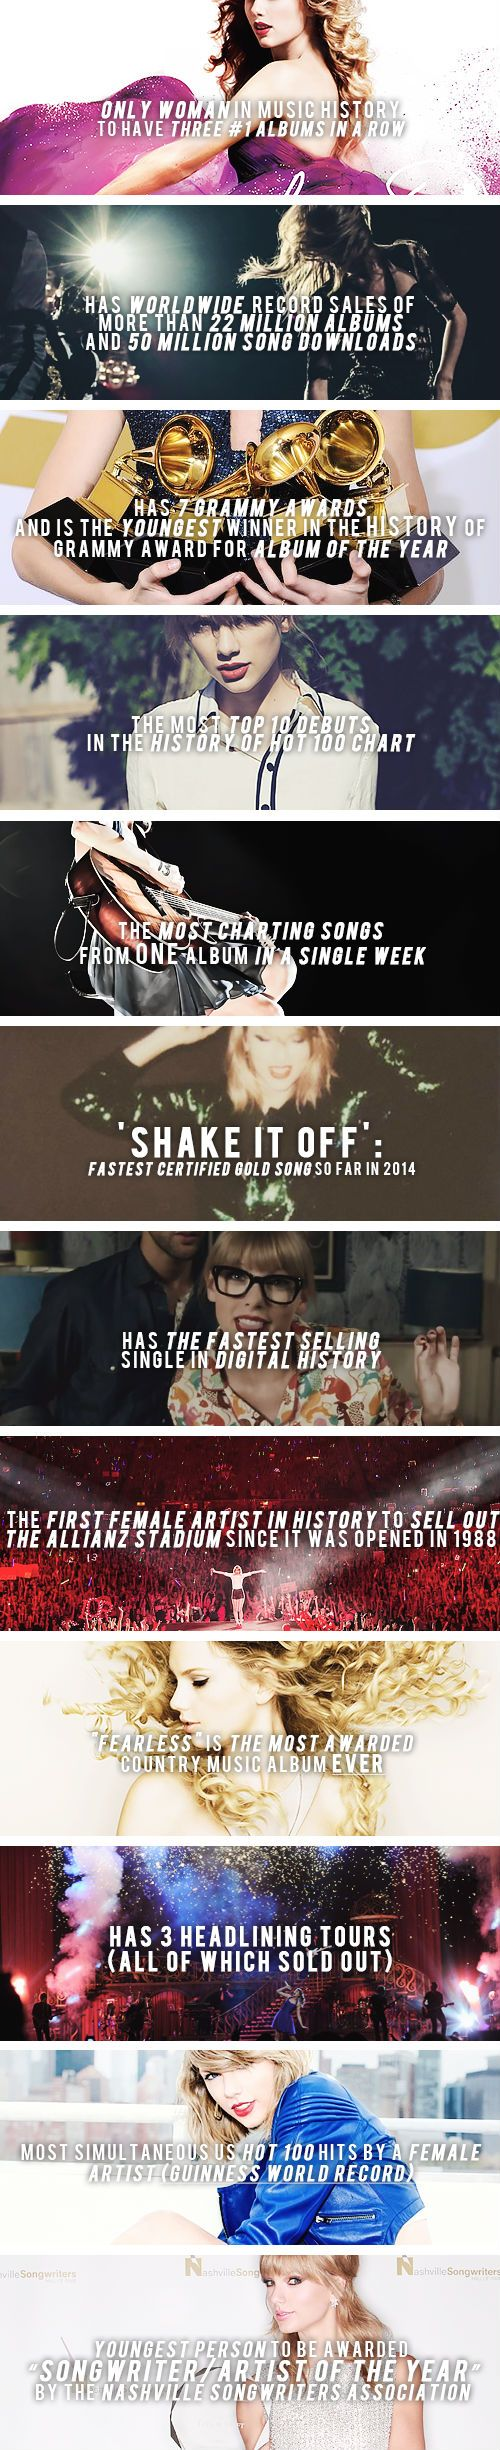 Taylor Swift slaying since 1989